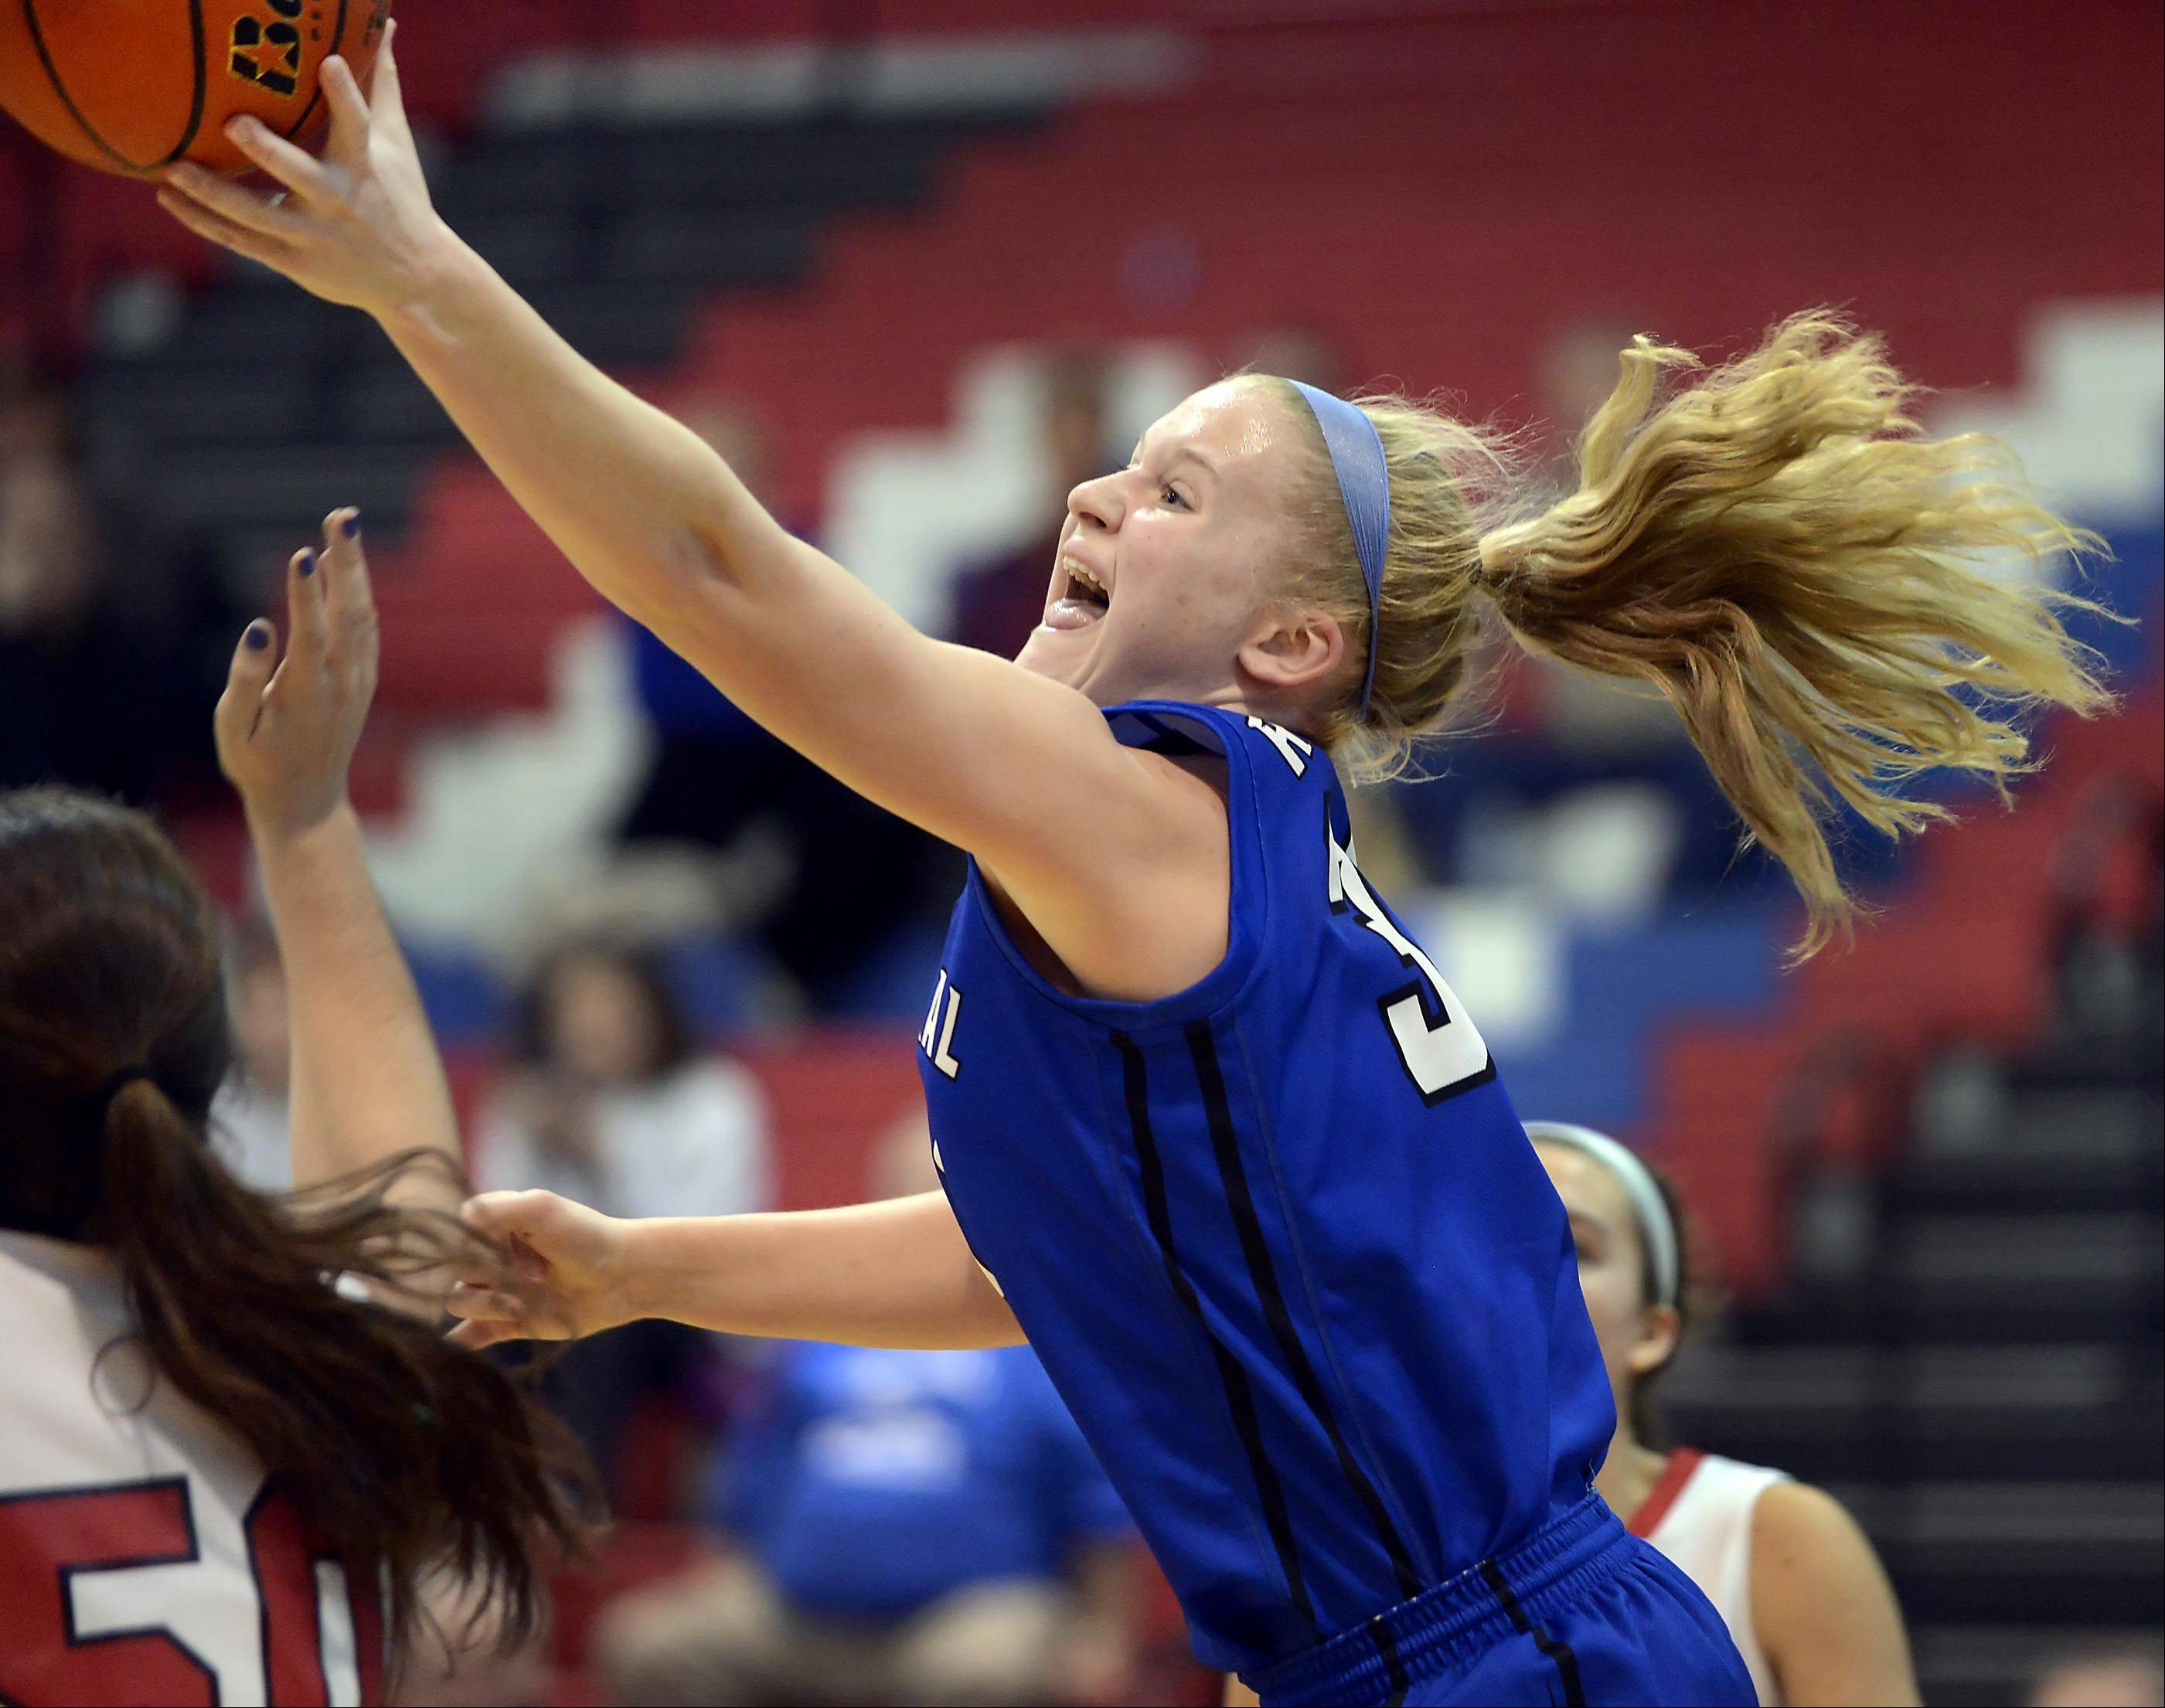 Burlington Central denied consolation title